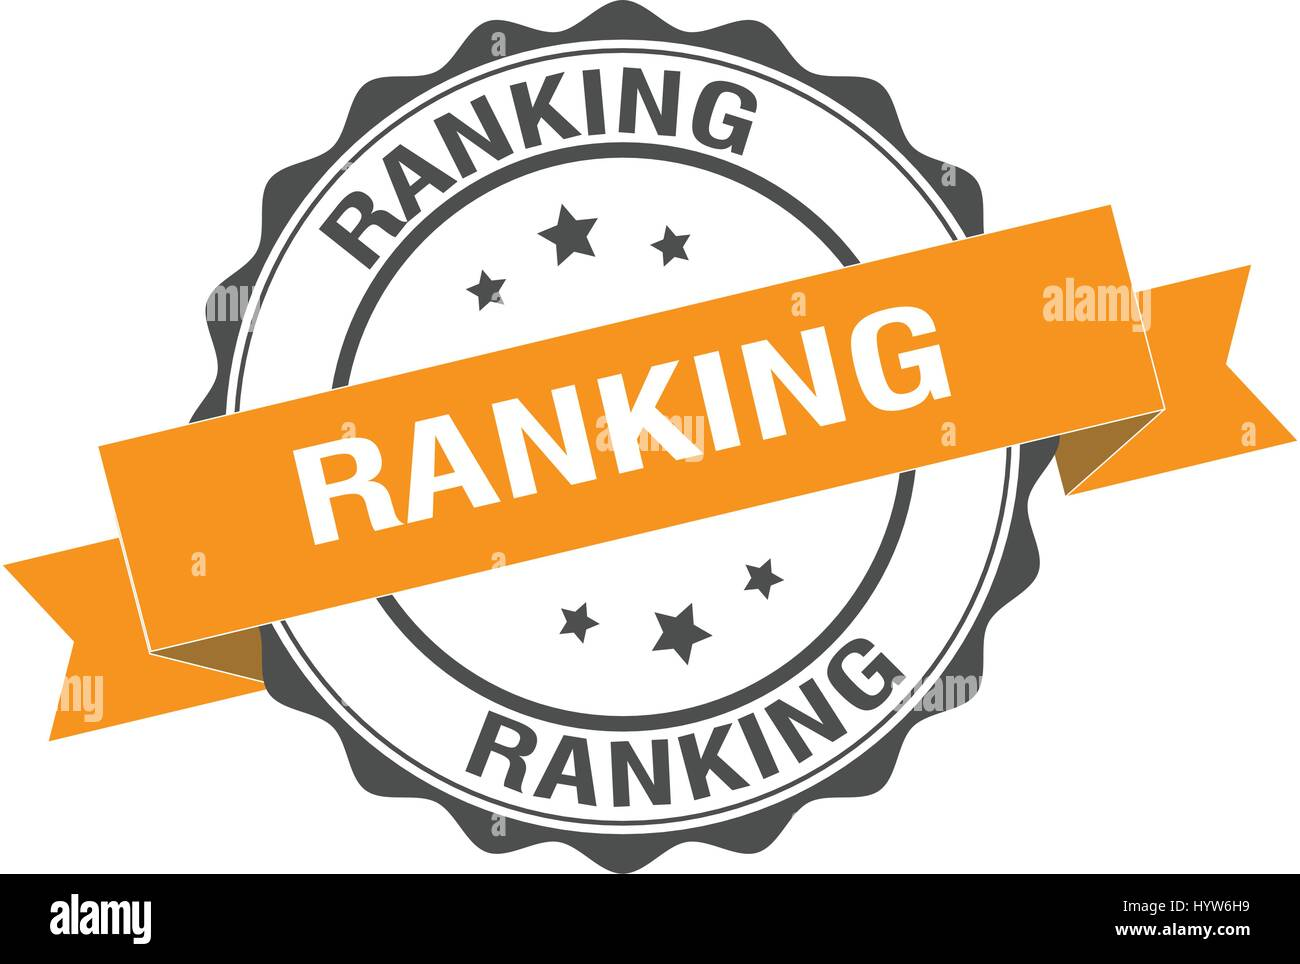 Ranking stamp illustration - Stock Image